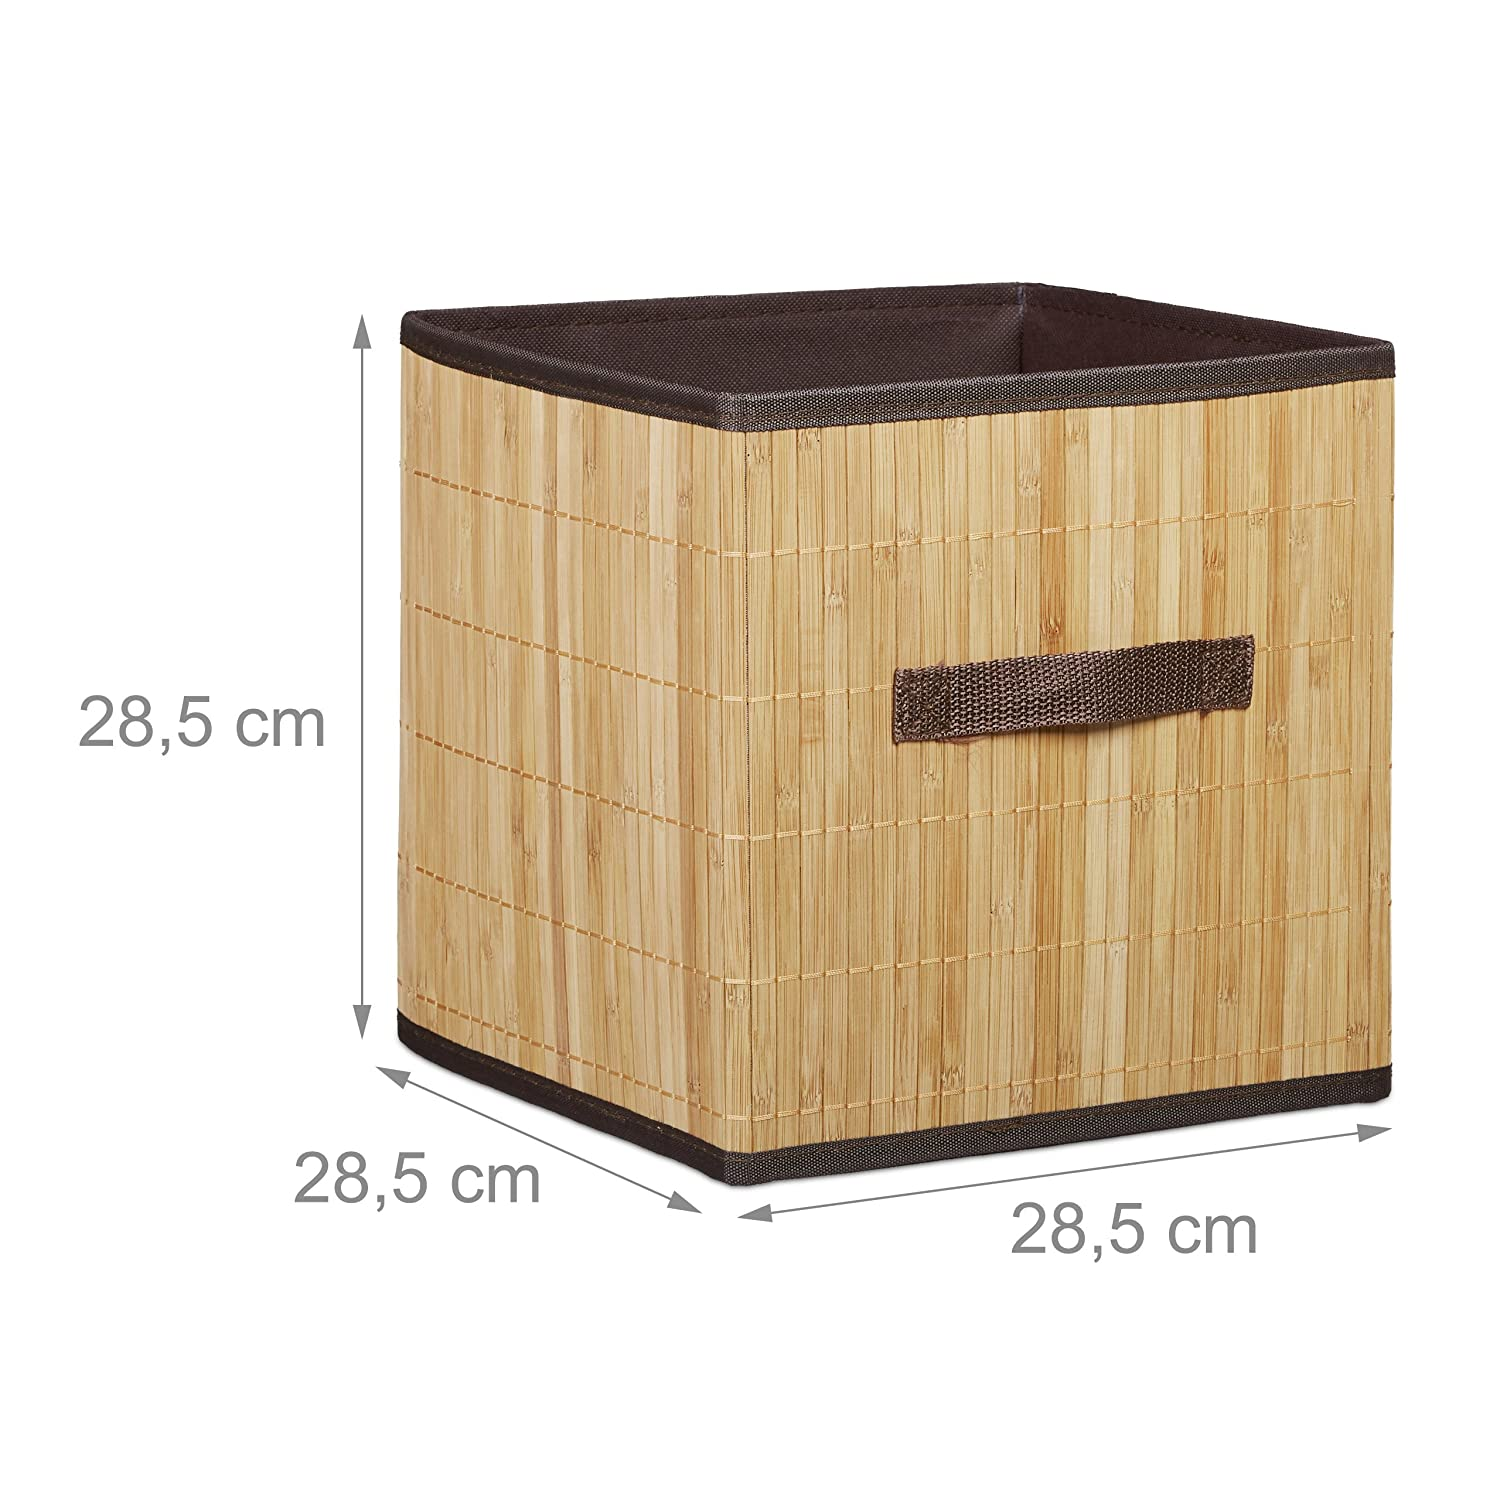 Relaxdays Folding Storage Box Bamboo-Look Square-Shaped with Handle Natural Brown 28.5 x 28.5 x 28.5 cm